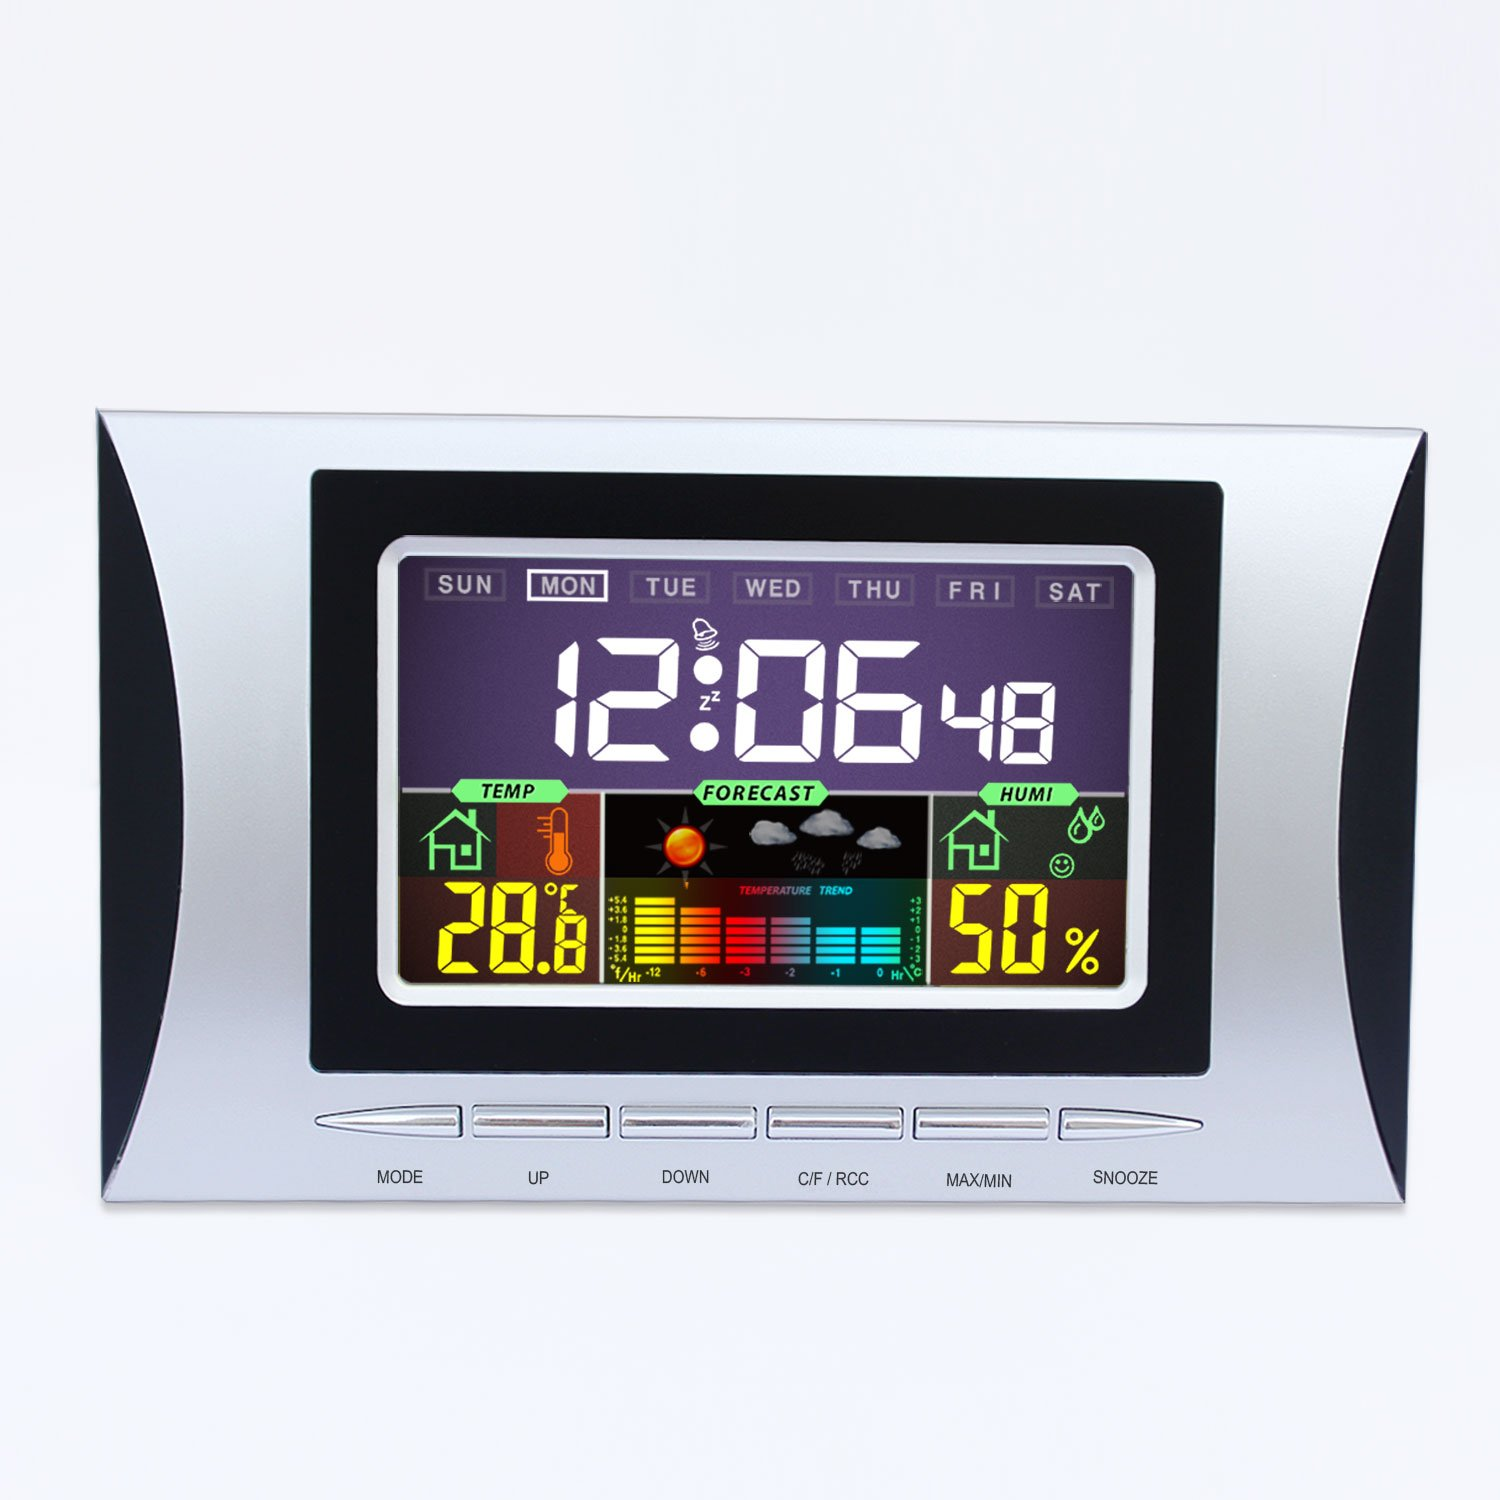 Hiyoo Temperature Station with Color LCD Screen Digital Humidity Meter Monitor Professional Indoor Temperature Meter Multi-functional Black Light Weather Station with Alarm Clock Calendar Alarm Snooze